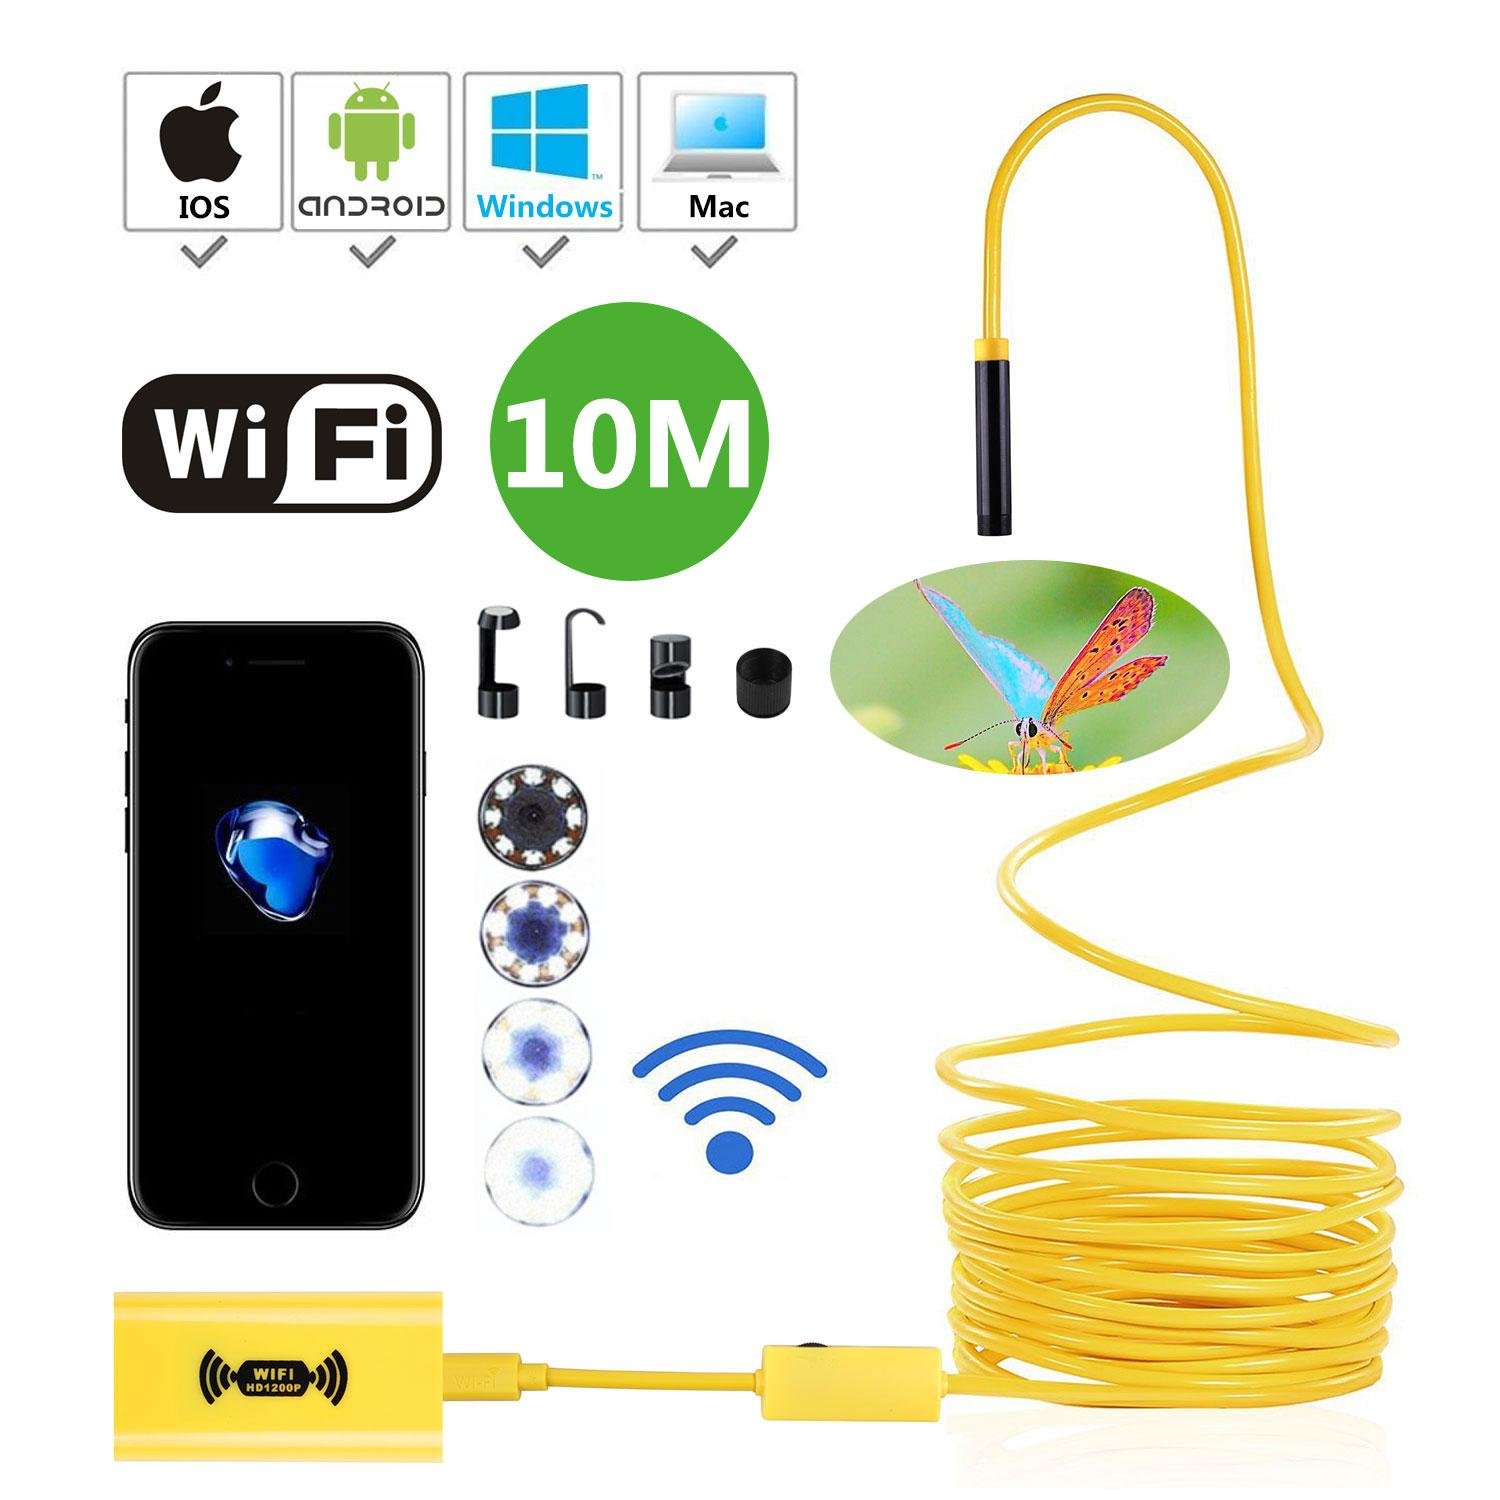 IP68 Waterproof Wireless Endoscope, 8mm HD 1200P Leegoal Wifi Borescope Camera 2.0 Megapixels CMOS Semi-Rigid Snake Cable with 8 Adjustable LED for IOS/Android/Windows/Mac, Black(3.5M) 7025779139310